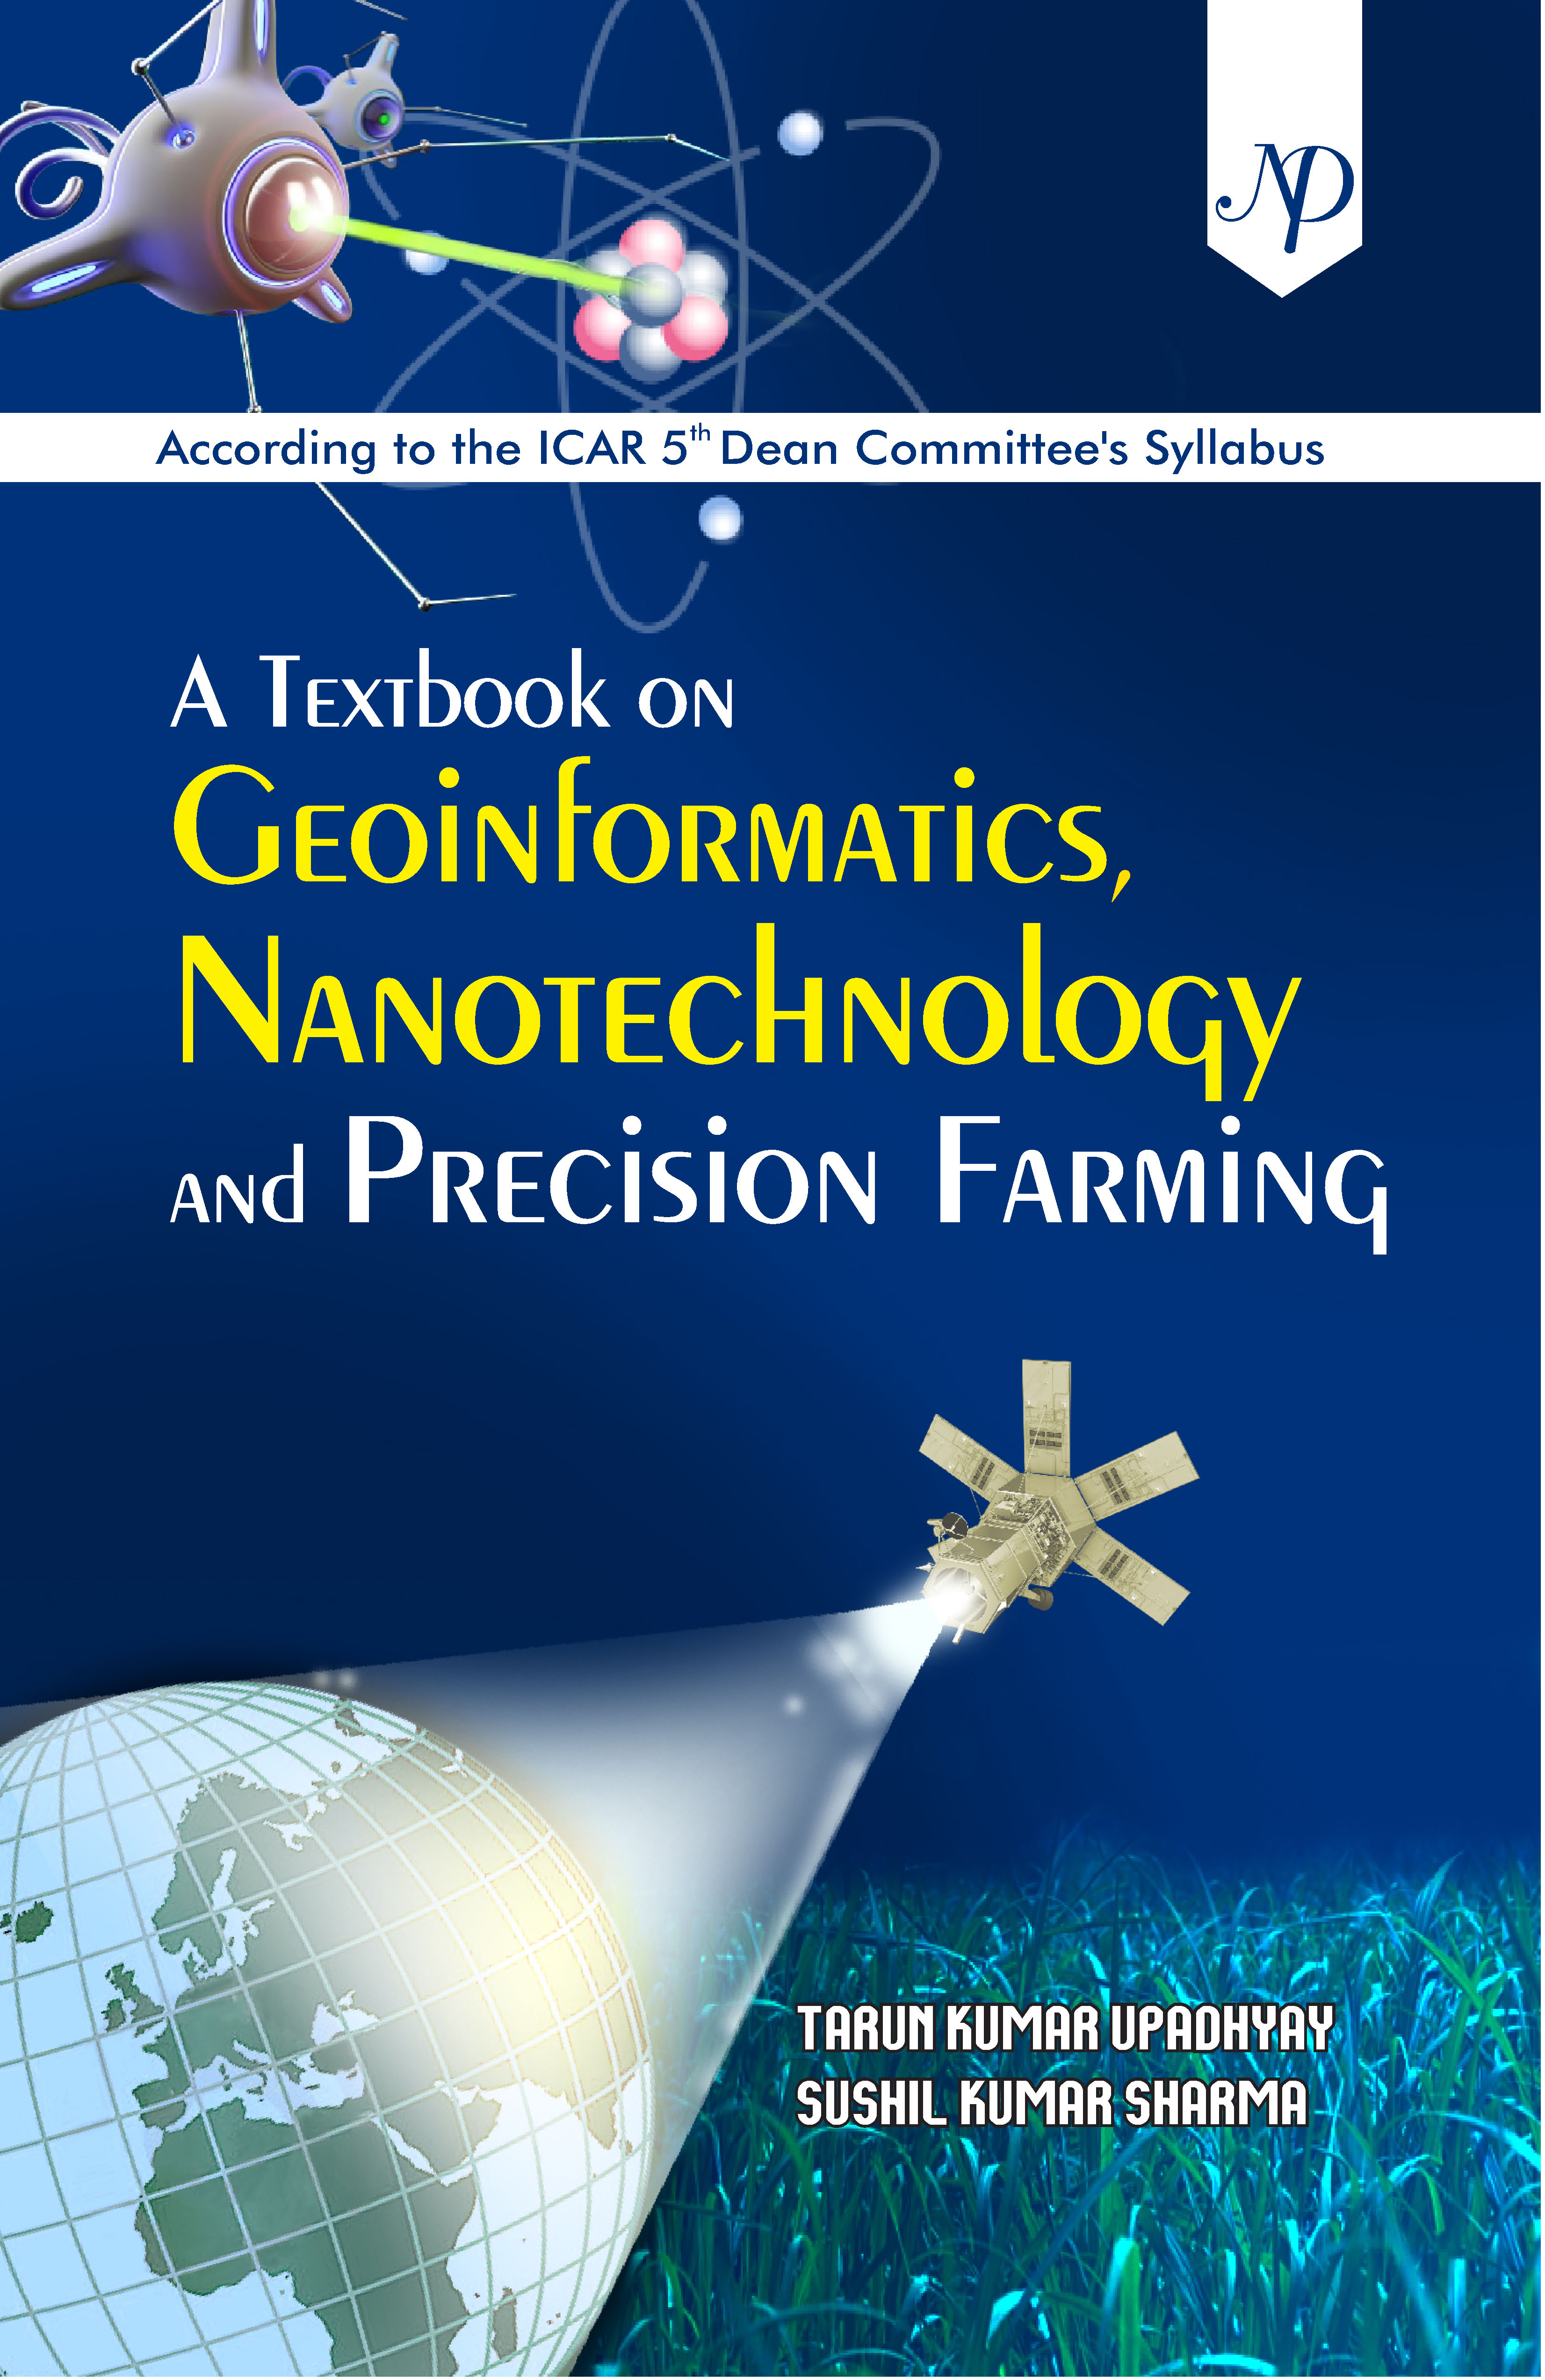 A Textbook on Geoinformatics, Nanotechnology and Precision Farming